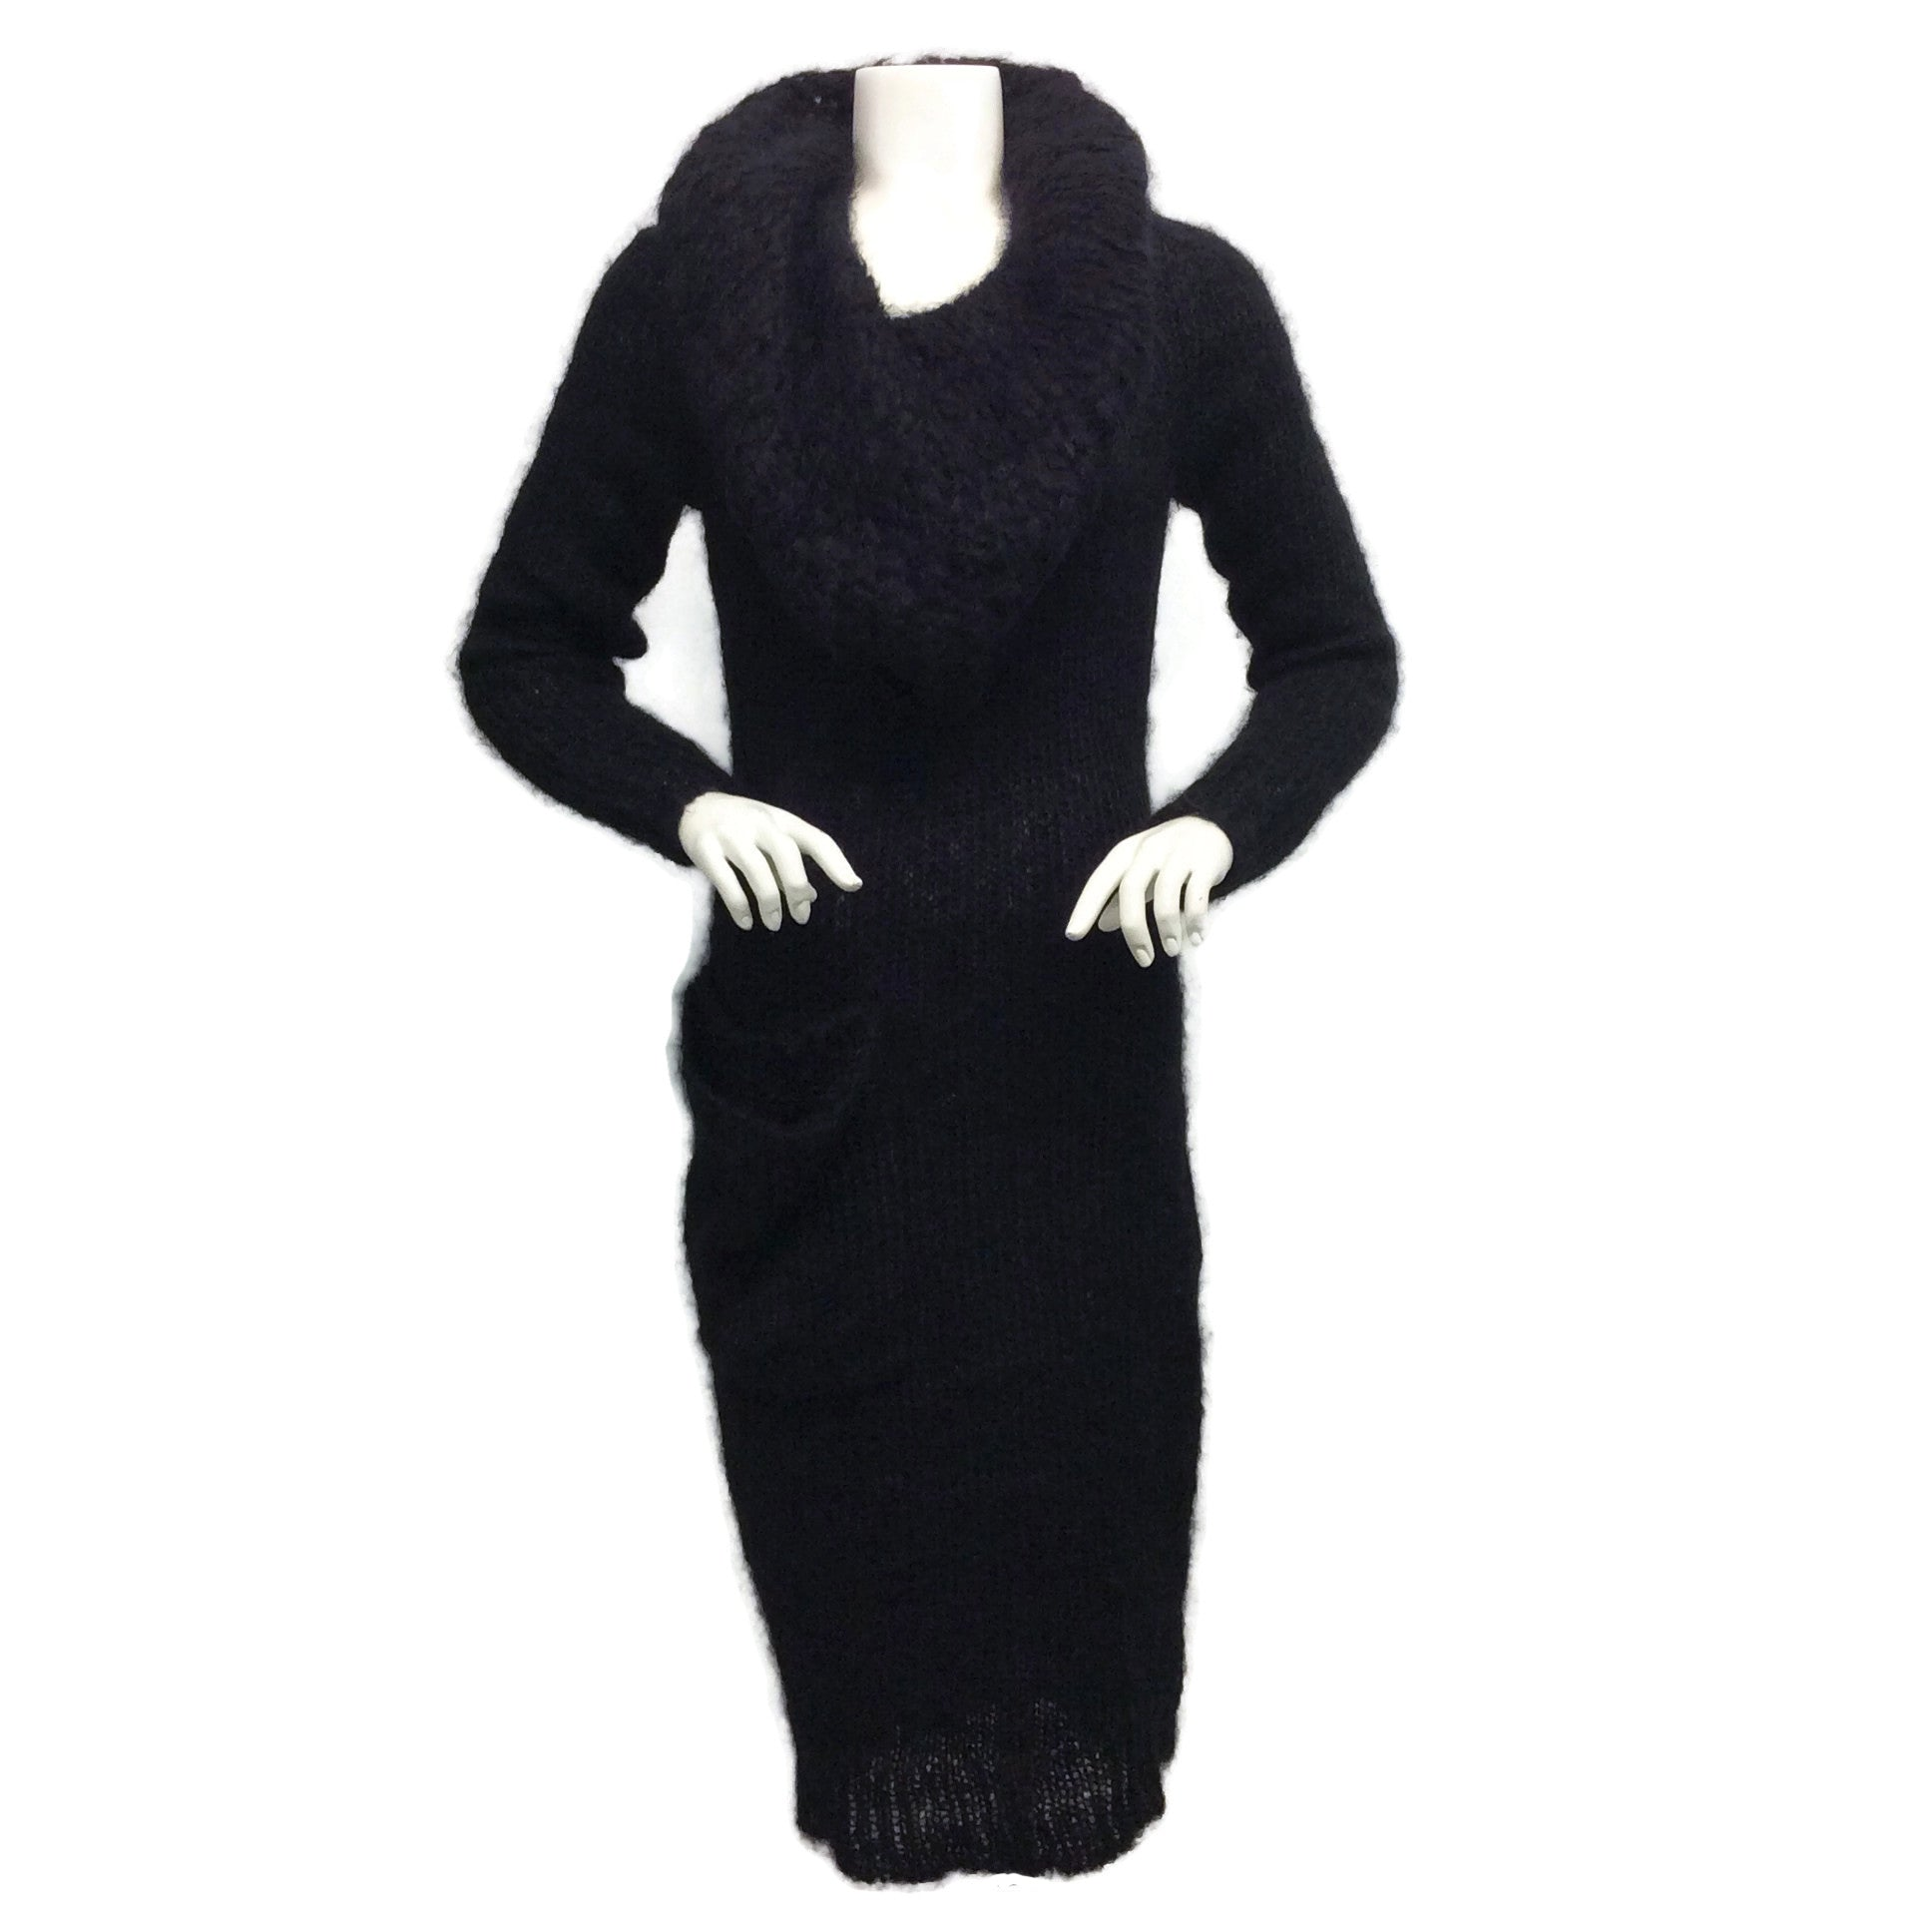 Alexander McQueen Black Mohair Cowl Neck Sweater Dress